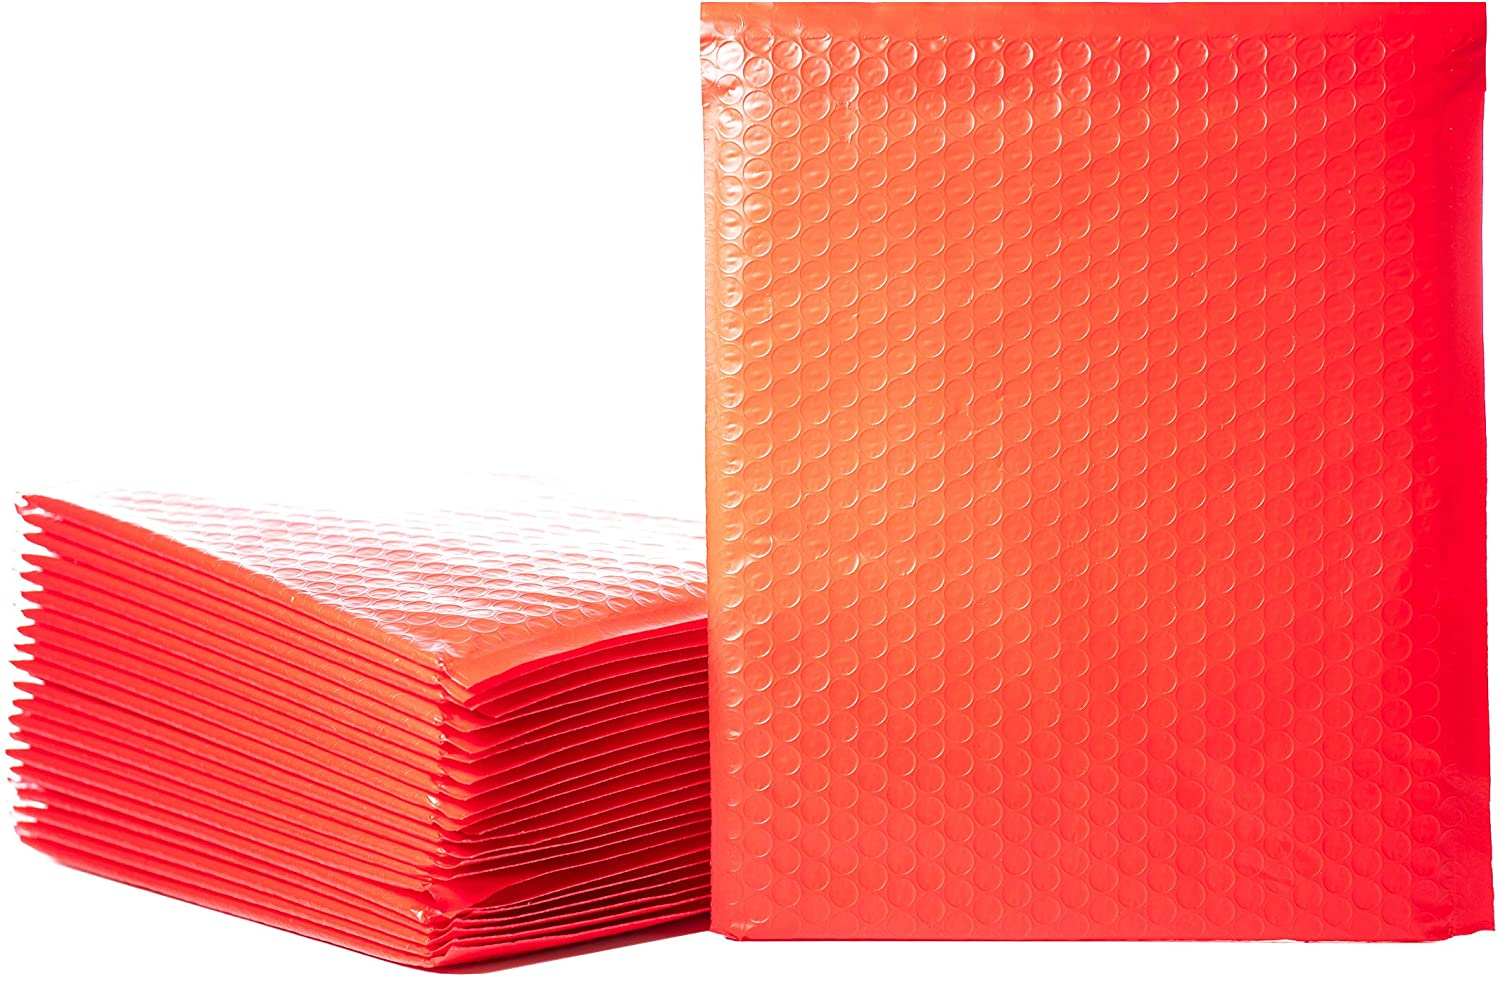 Empire Mailers #2 8.5 x 12-inch Red Padded Envelopes, Self Seal Mailers, Bubble-Lined Shipping Envelopes, Mail-Approved Poly Bubble Mailers, Self-Sealed Mailing Packages, Pack of 25